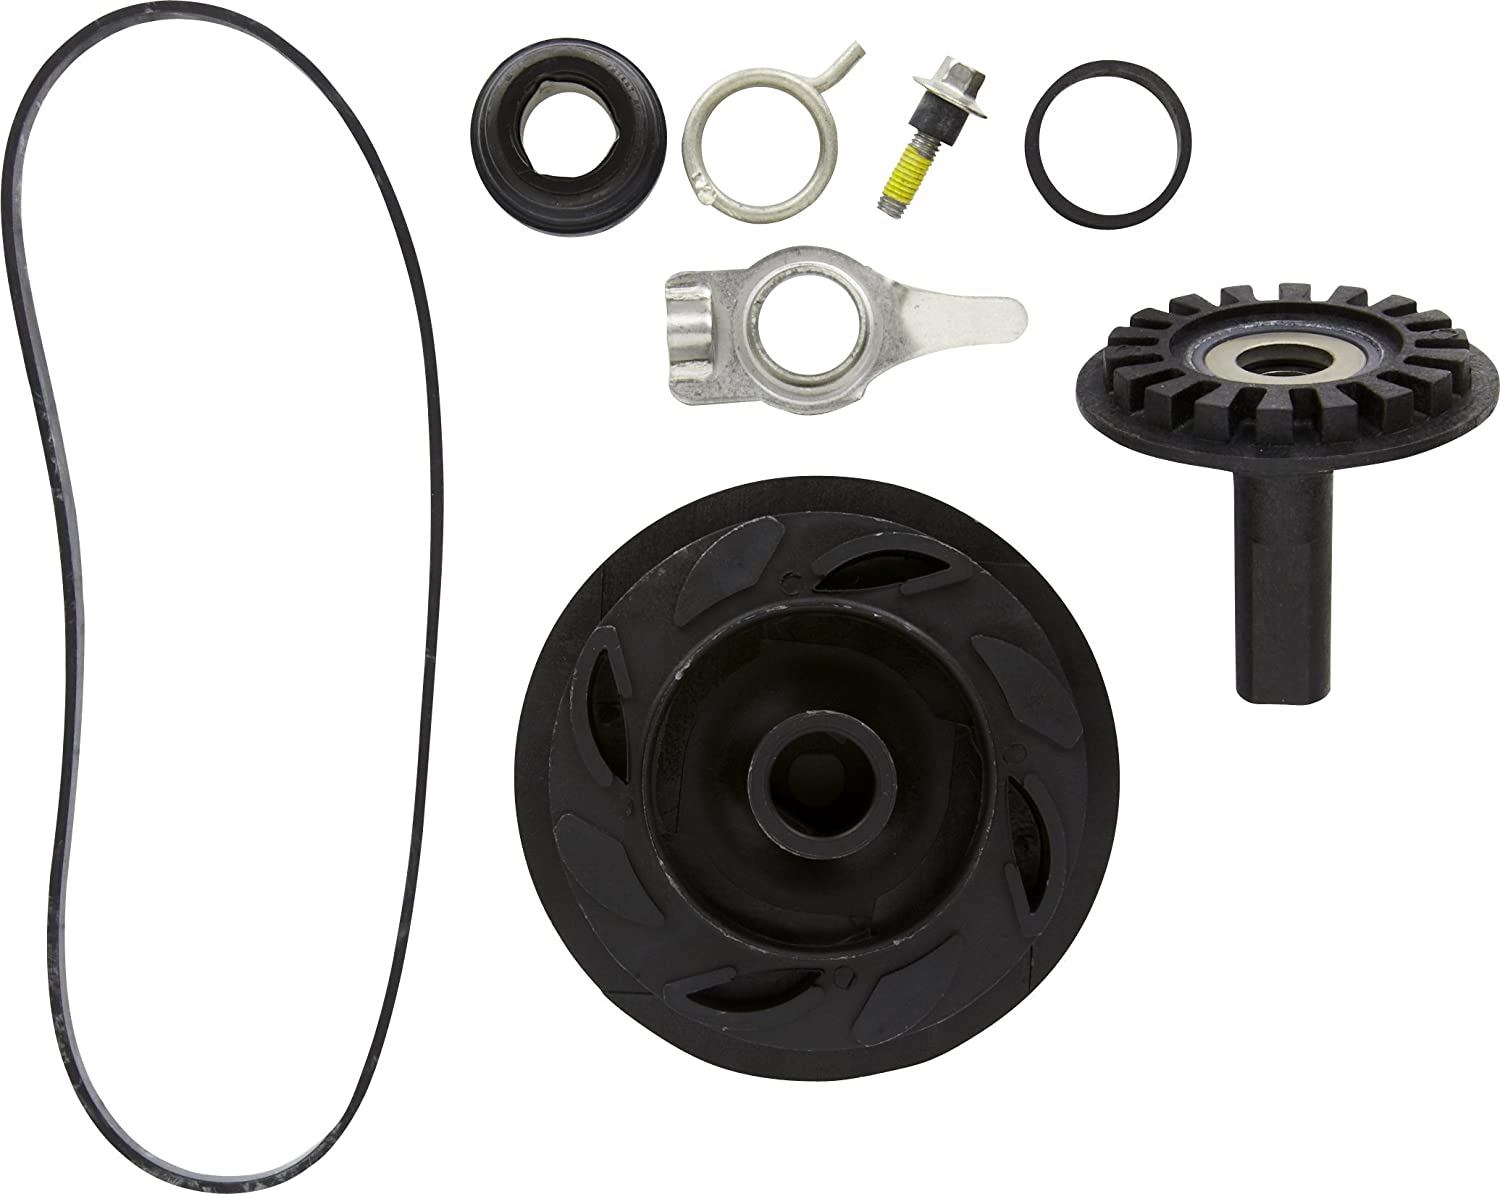 Whirlpool 675806 Impeller Kit